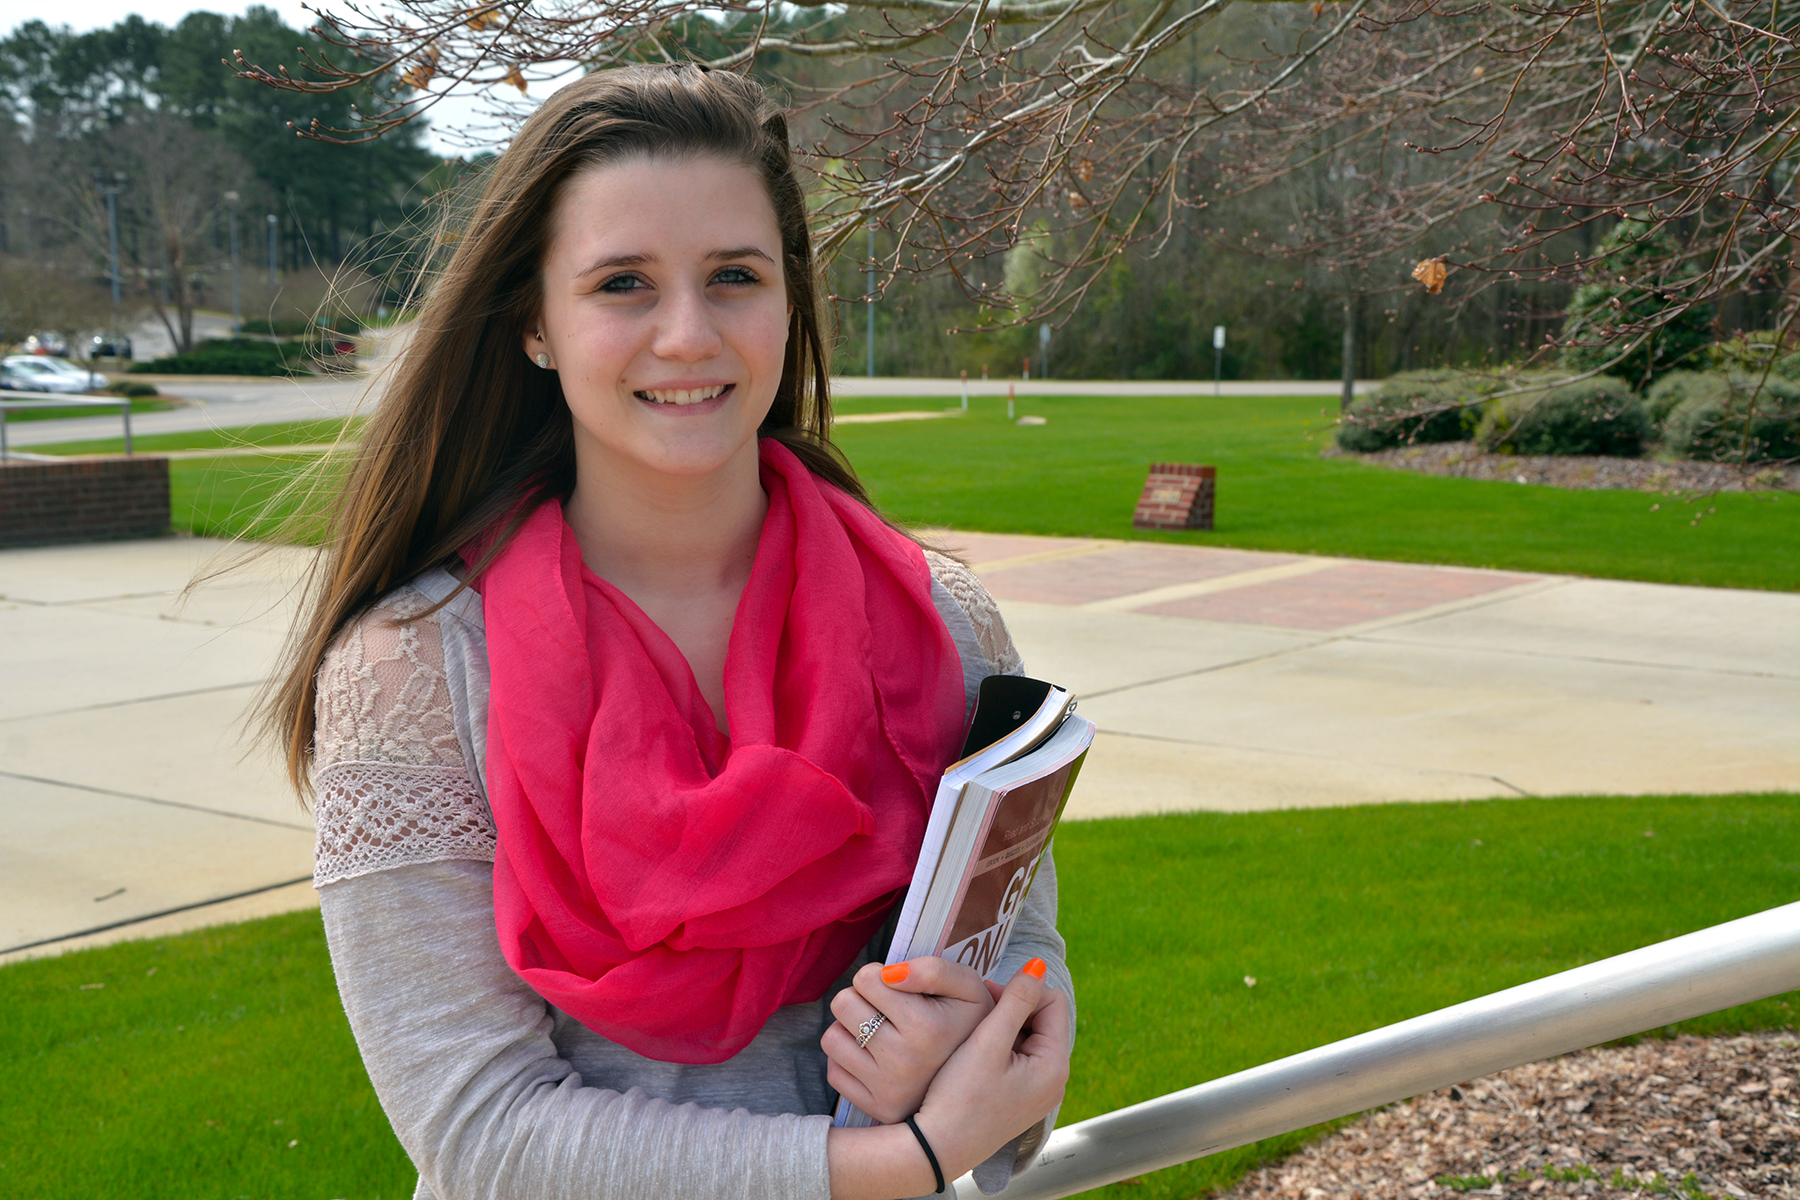 RCC graduate Hailey Stafford stands with textbooks on the main campus of RCC in Hamlet.